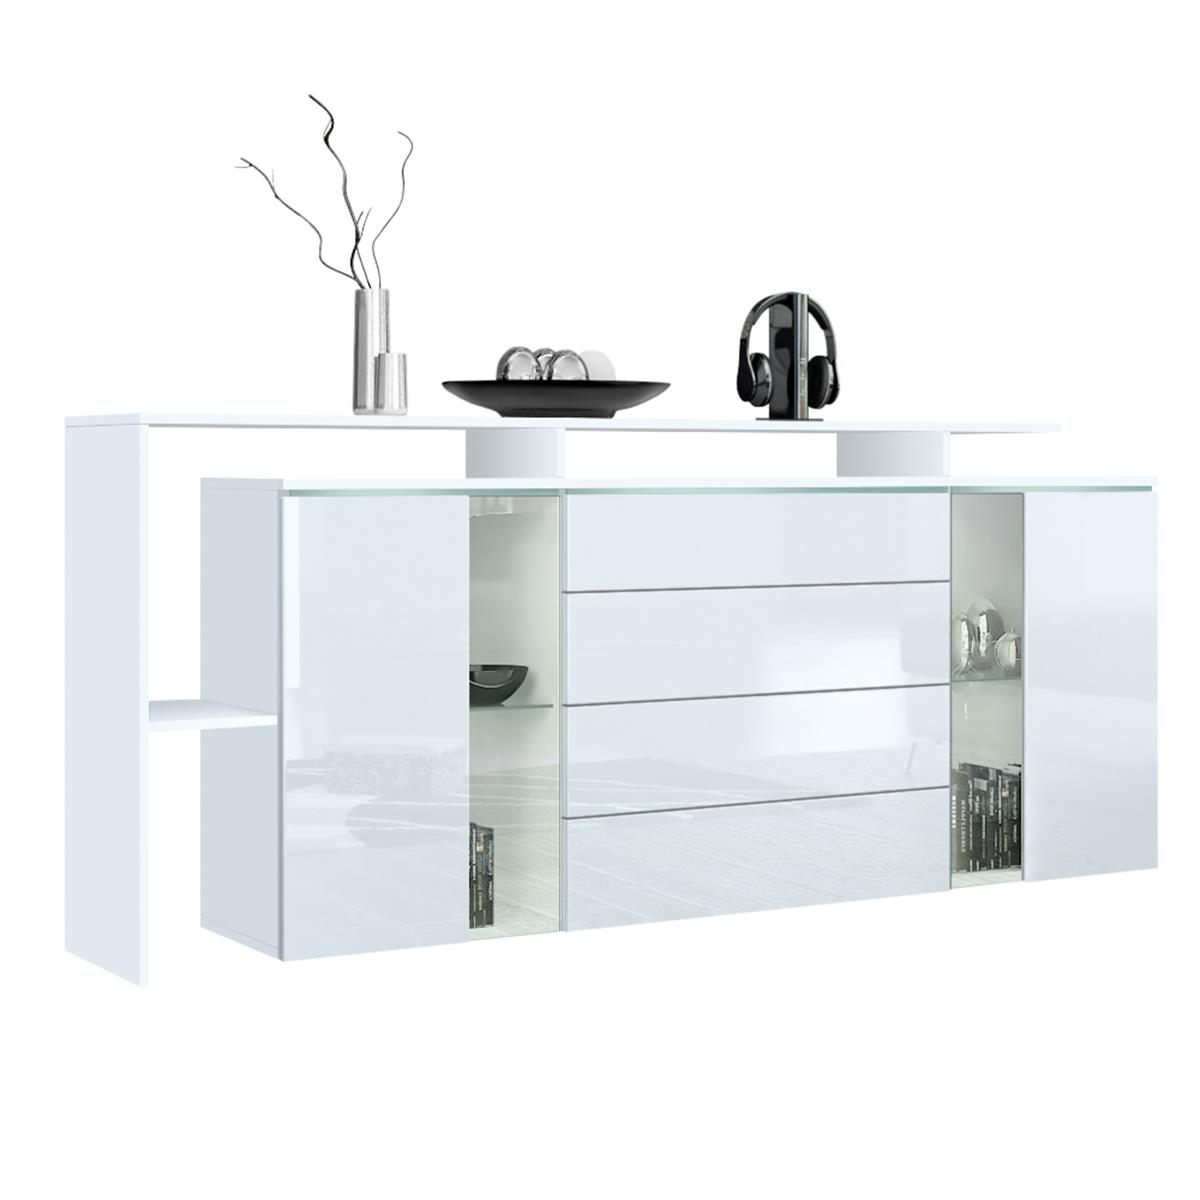 sideboard lissabon v2 mit regalaufbau glaselemente. Black Bedroom Furniture Sets. Home Design Ideas